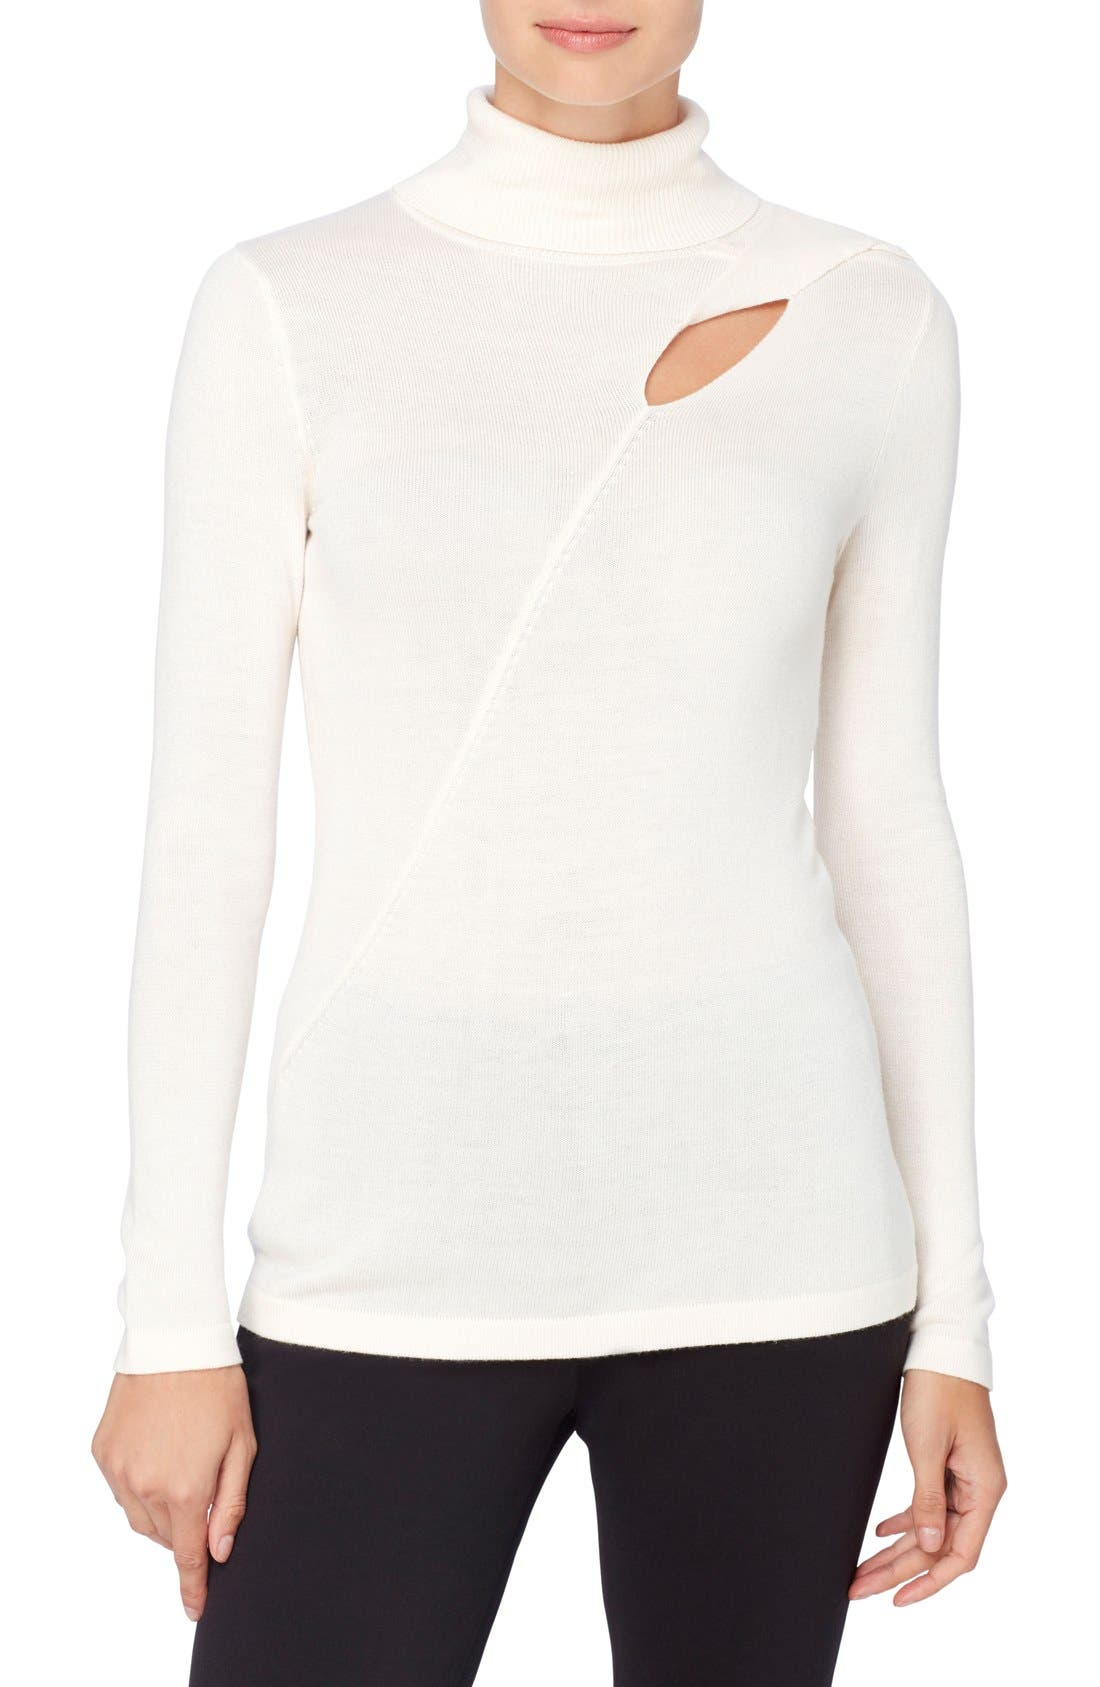 Catherine Catherine Malandrino Dessie Cutout Turtleneck Sweater